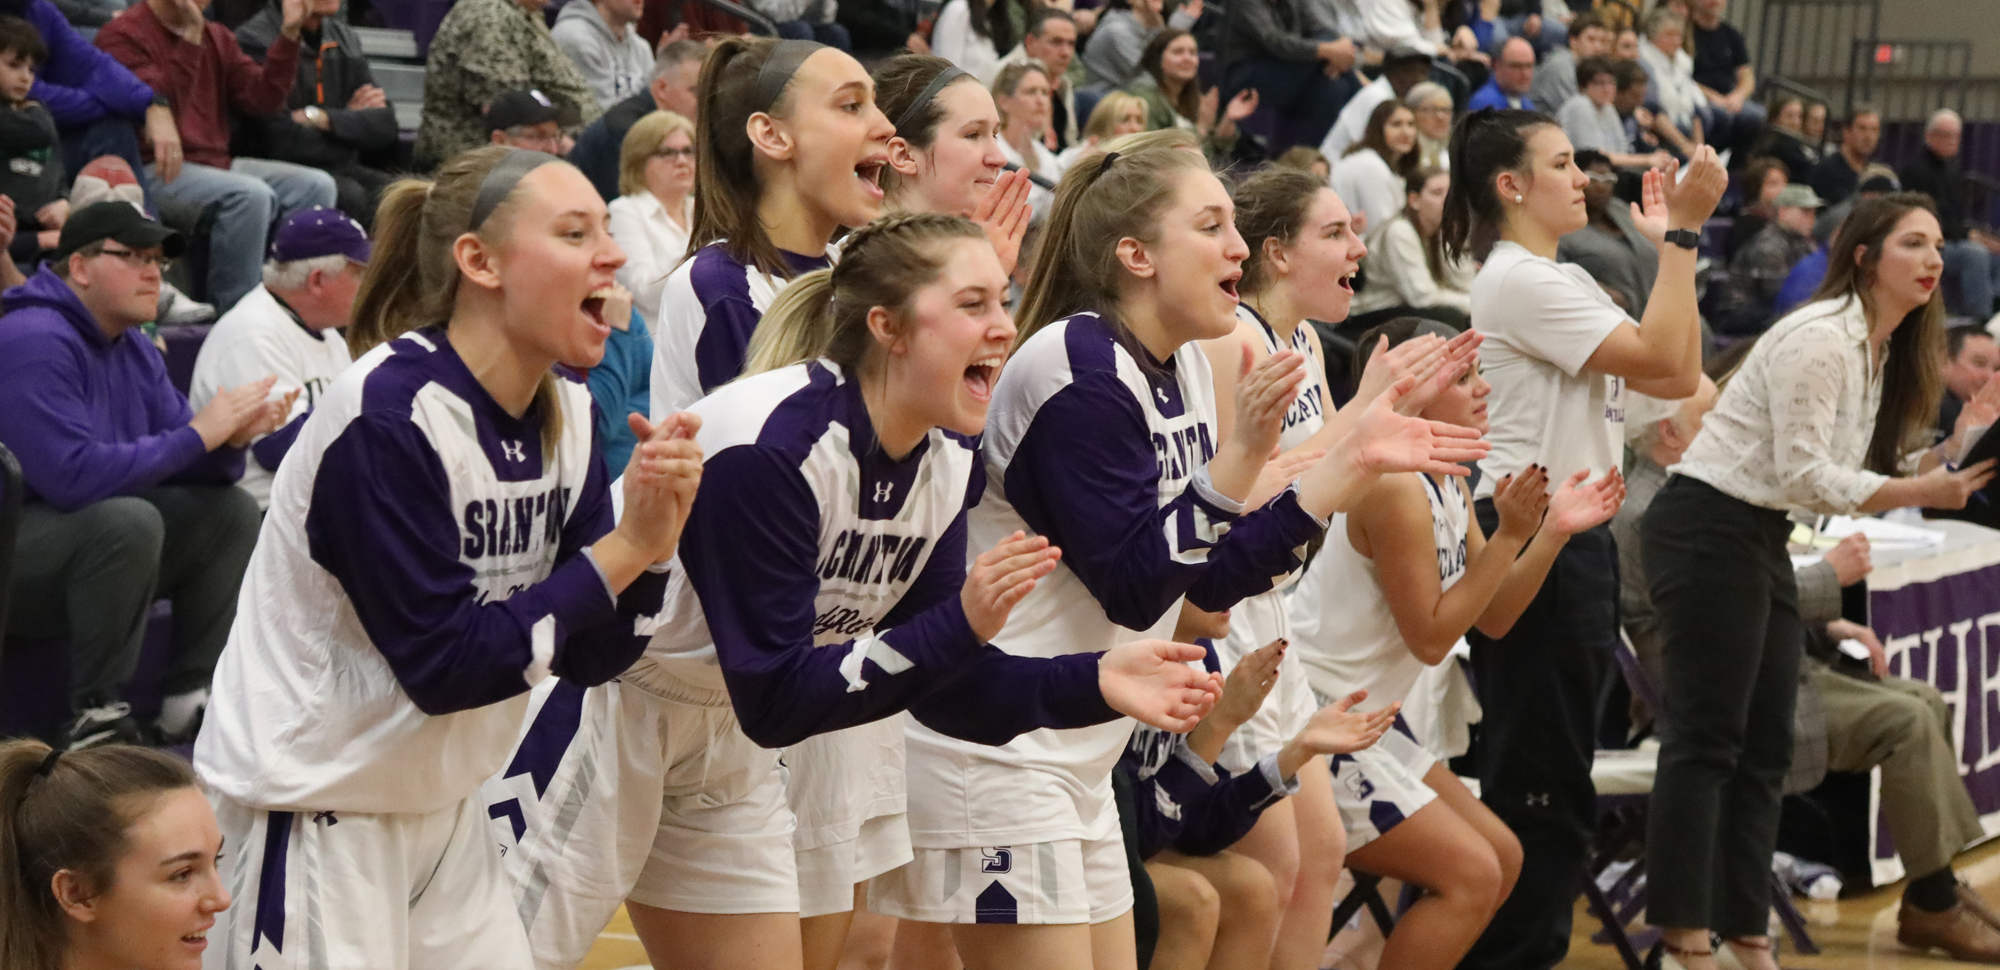 The University of Scranton women's basketball team will play in the NCAA Tournament for the 32nd time in program history, as the Lady Royals will host First and Second Round games in the Long Center beginning Friday. © Photo by Timothy R. Dougherty / doubleeaglephotography.com